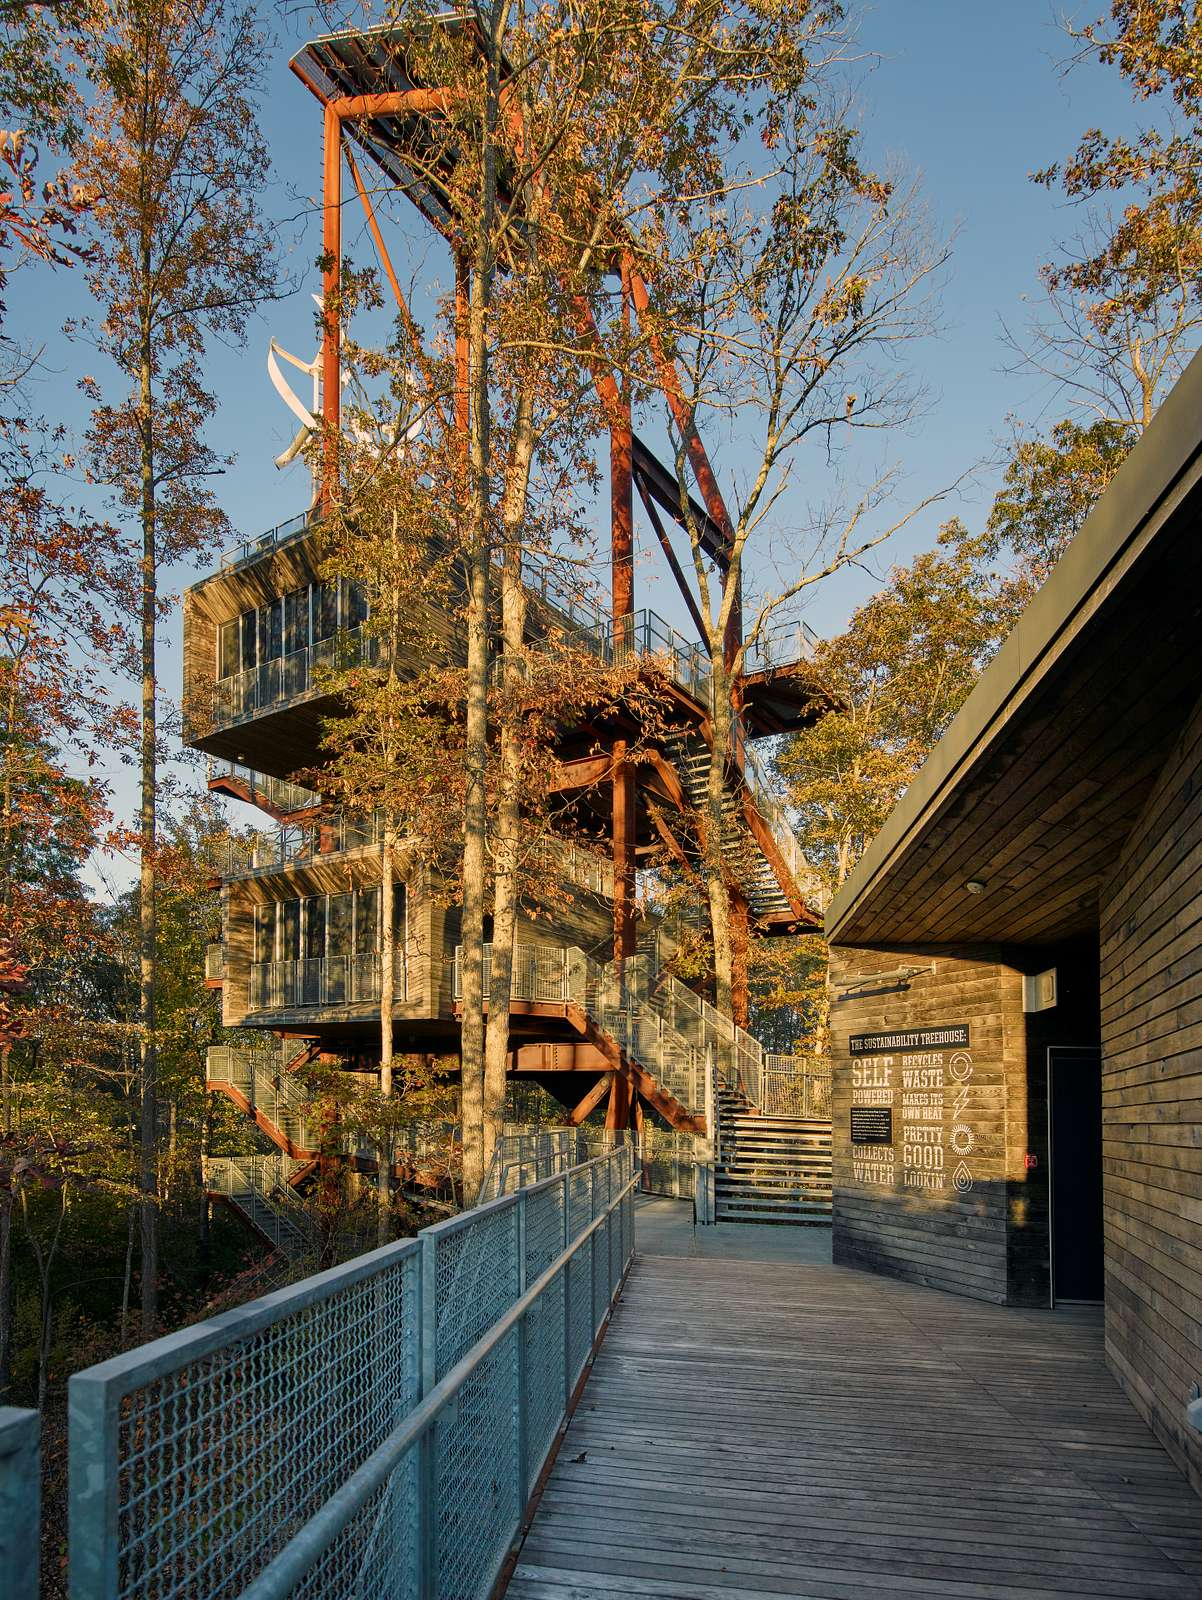 """A gigantic """"tree house,"""" actually the San Francisco-based Mithun architecture firm's freestanding, steel-frame-supported Sustainability Treehouse that is often even more hidden amid the evergreens, at the Summit Bechtel Reserve, site of annual National Scout Jamboree (and sometimes international scouting retreats as well) in the sprawling wilderness near the tiny town of Glen Jean and the New River Gorge in West Virginia"""